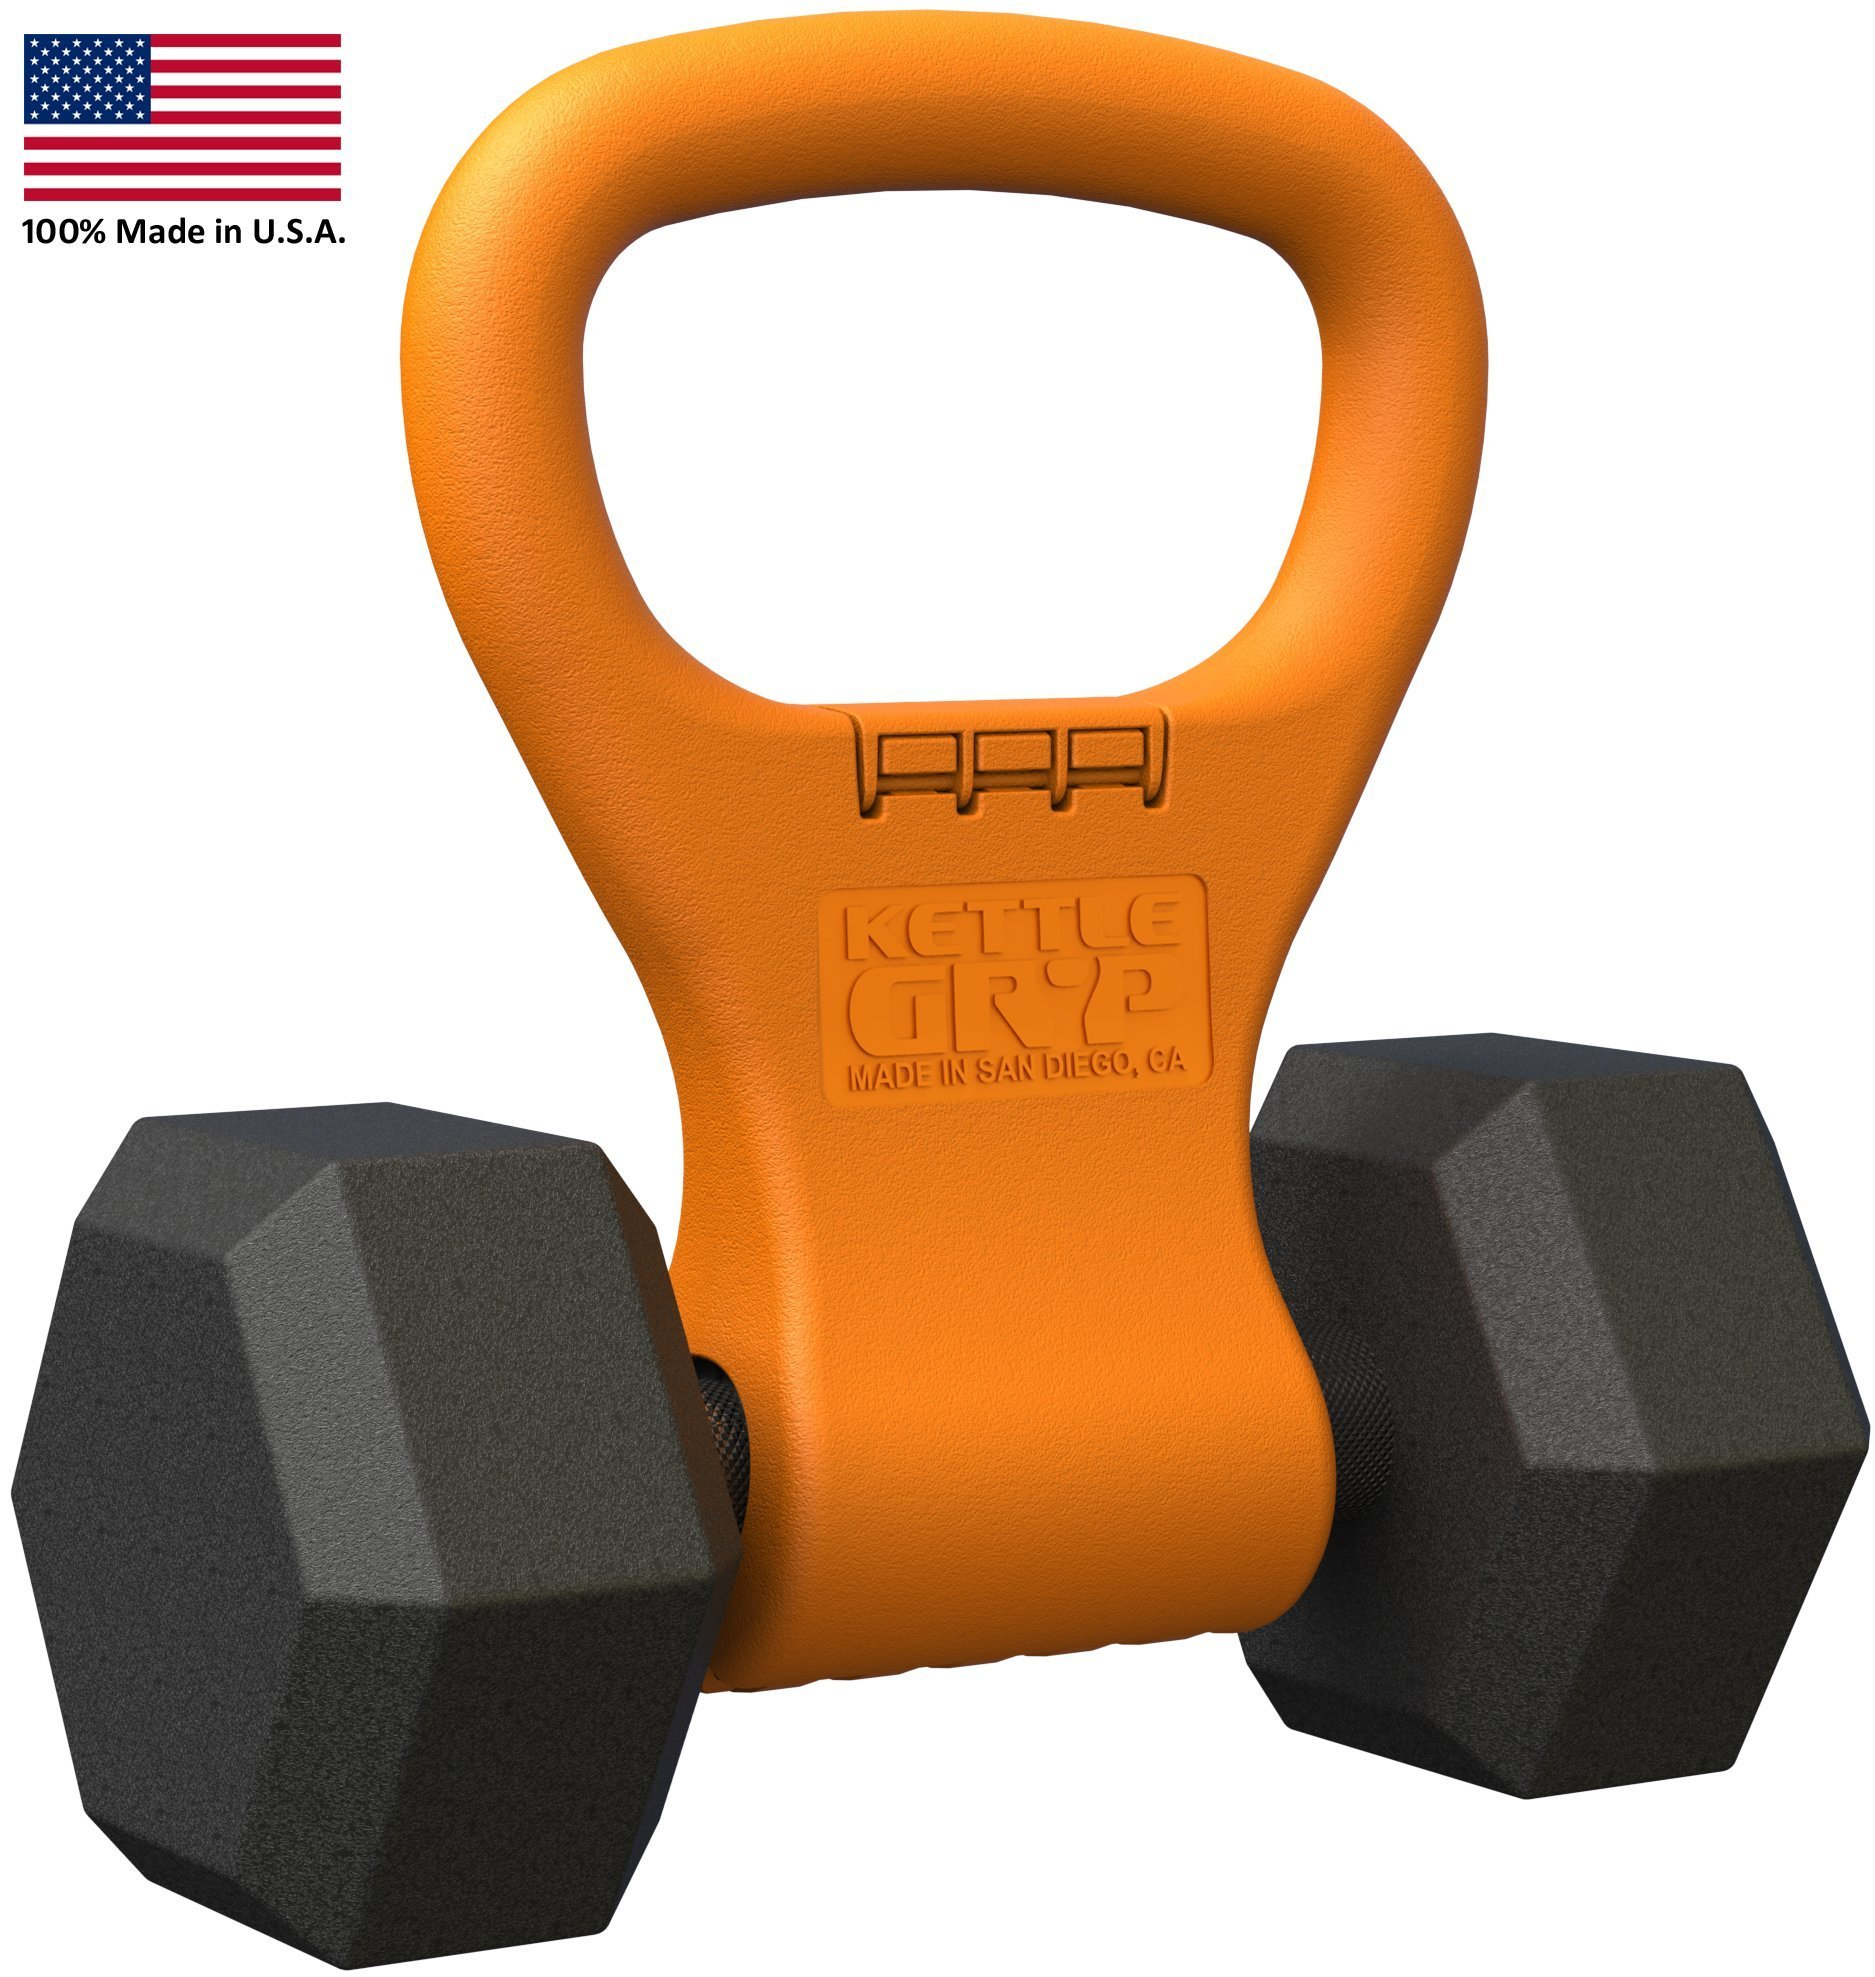 Kettle Gryp Kettlebell Adjustable Portable Weight Grip Travel Workout Equipment Gear for Gym Bag, Crossfit WOD, Weightlifting, Bodybuilding, Lose Weight | Clamps to Dumbells | Made in U.S.A. by Kettle Gryp